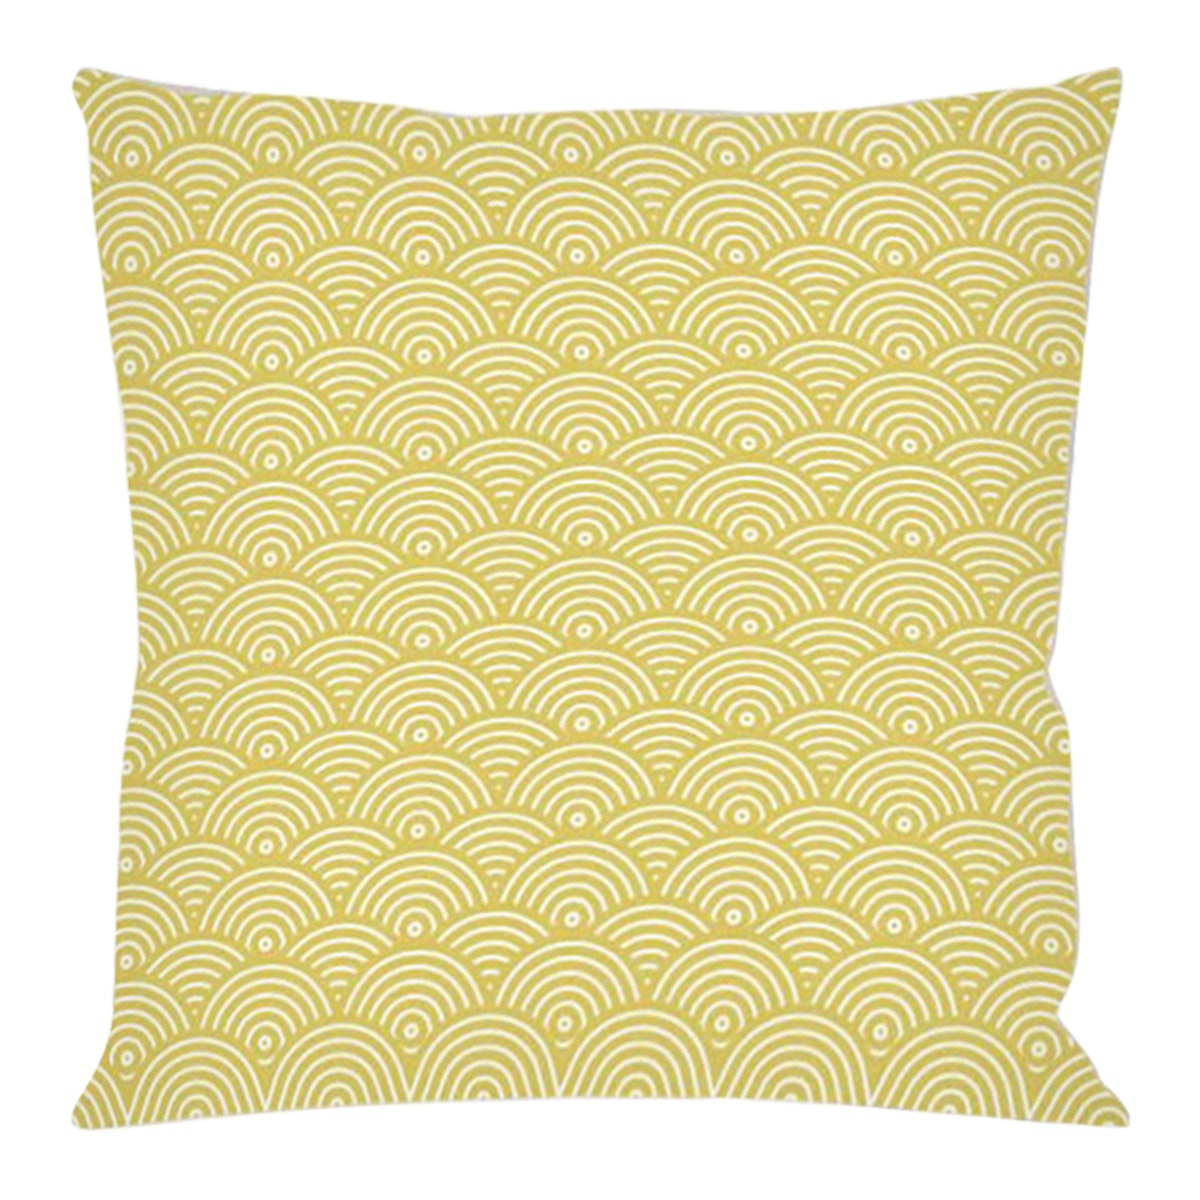 On&On Gold Chinese Cushion 40x40cm